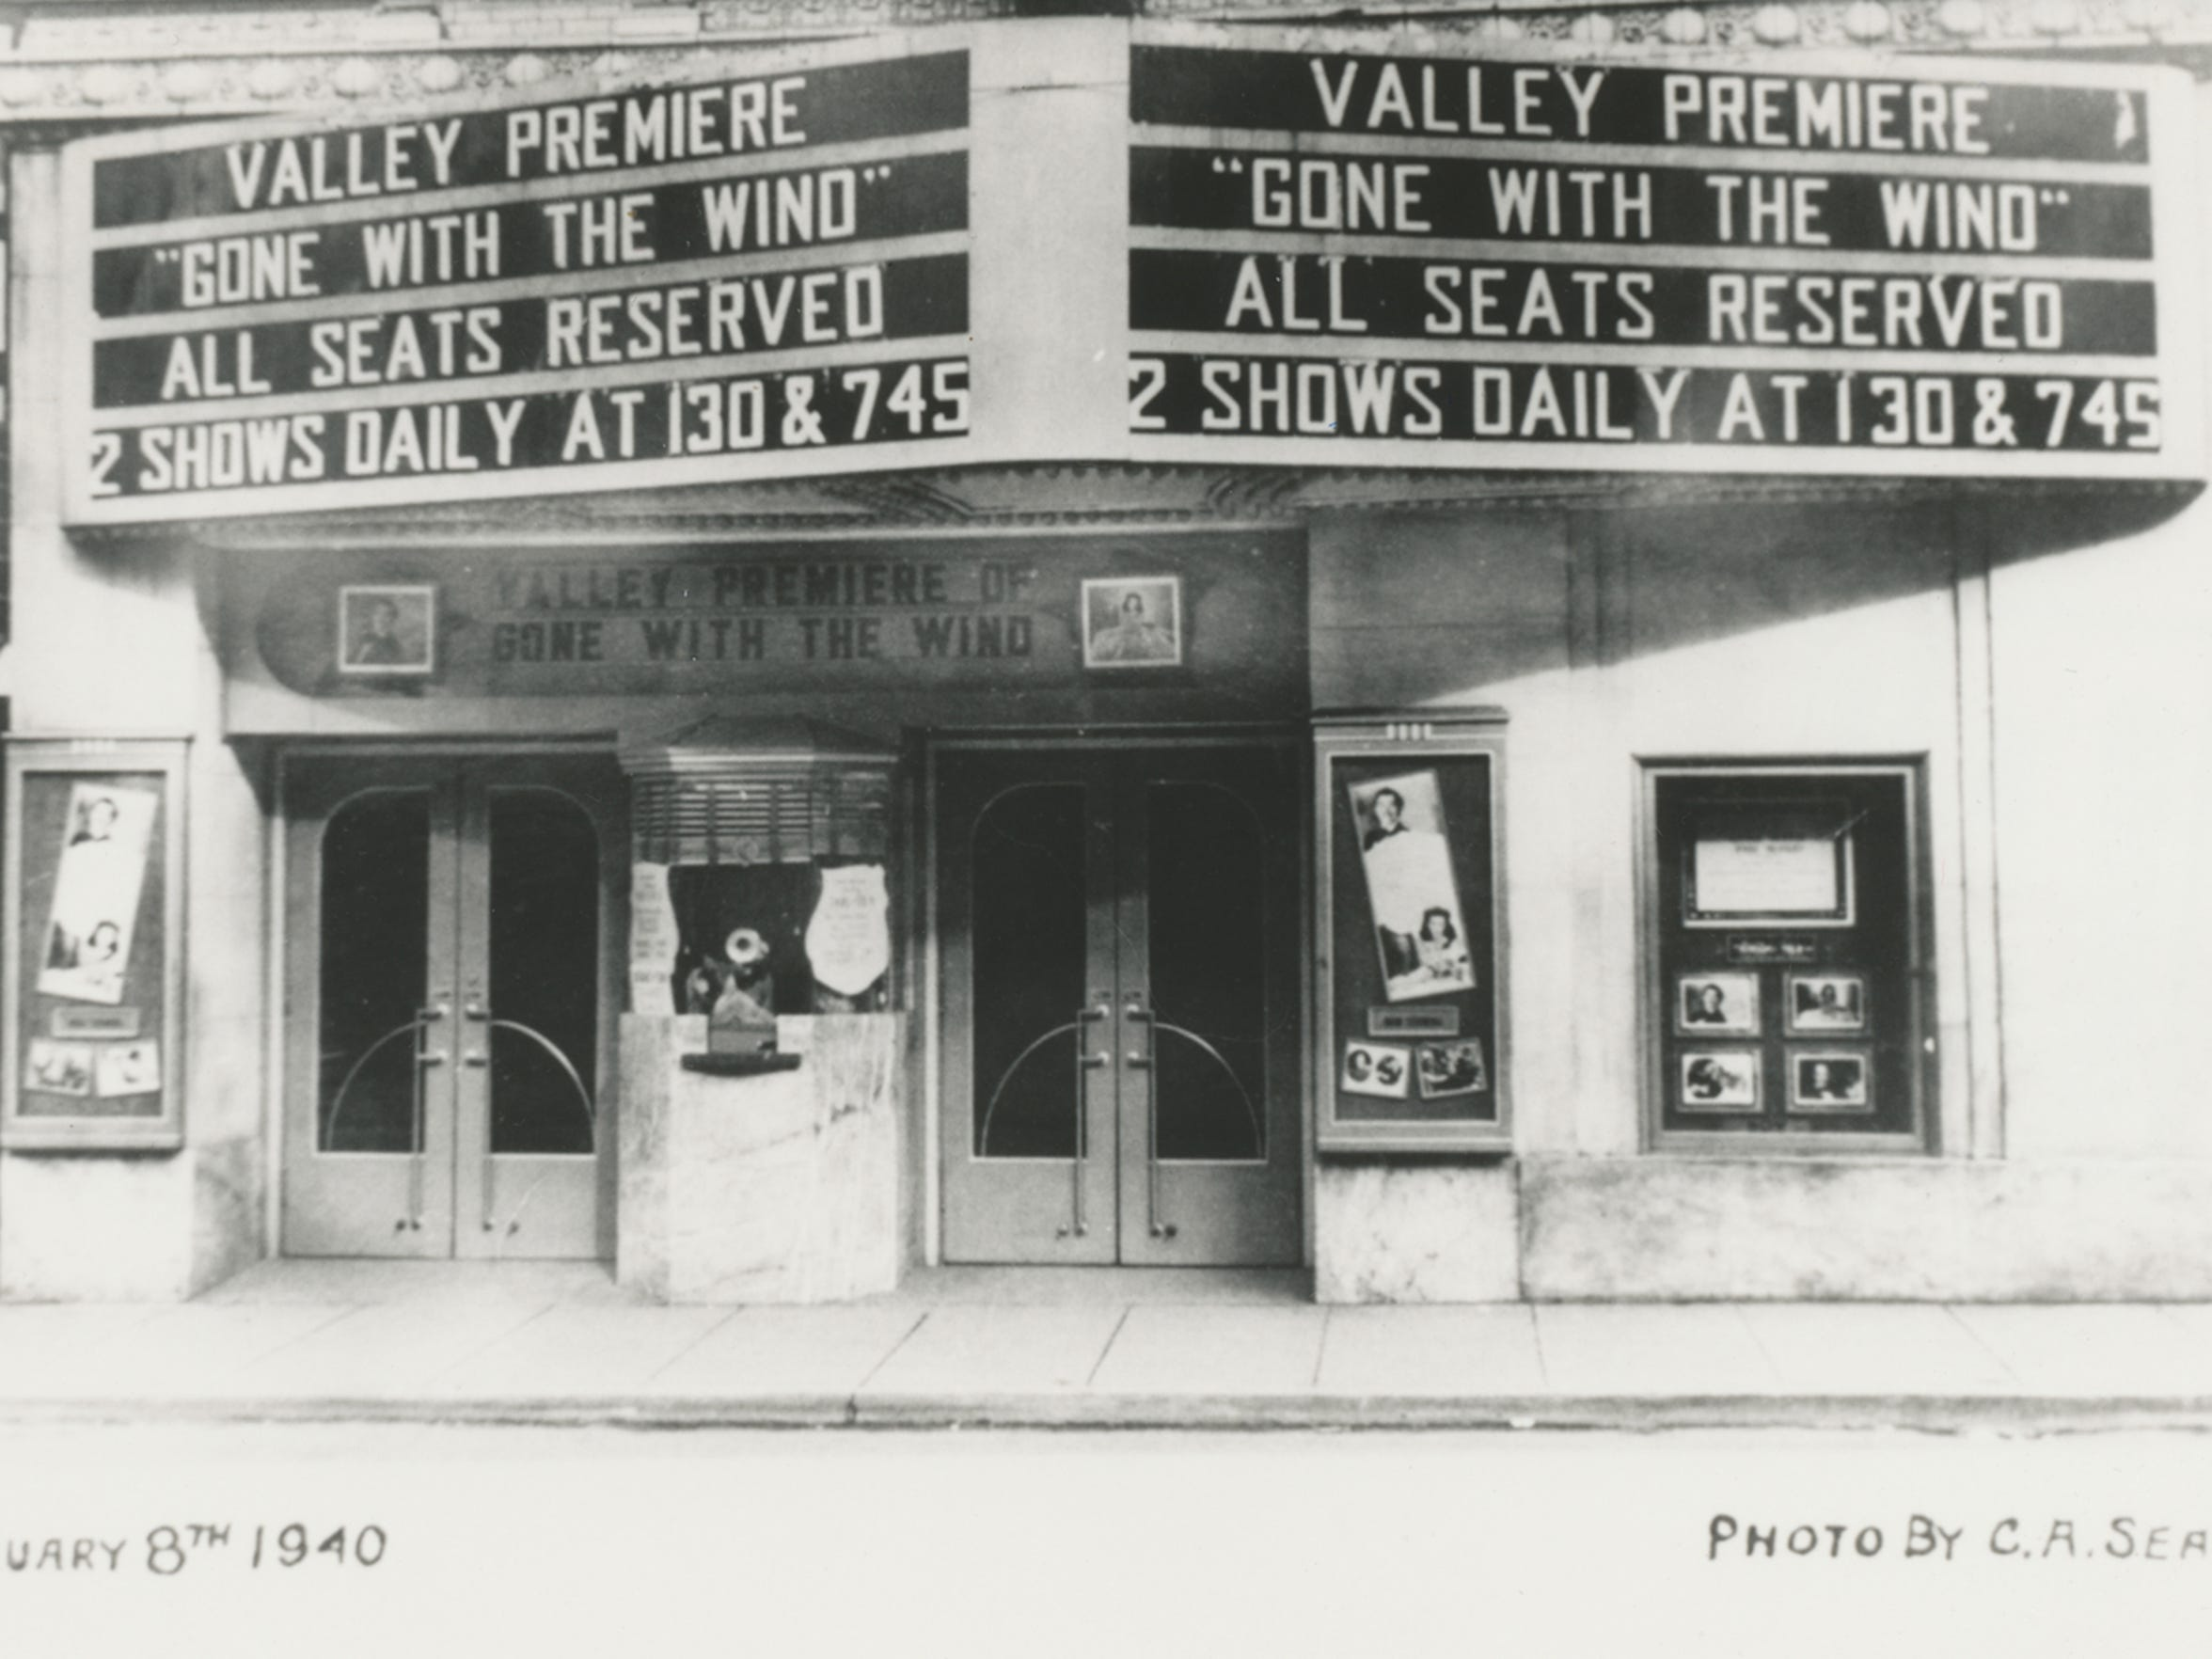 Photograph taken Feb. 8, 1940 of the Dixie Theater